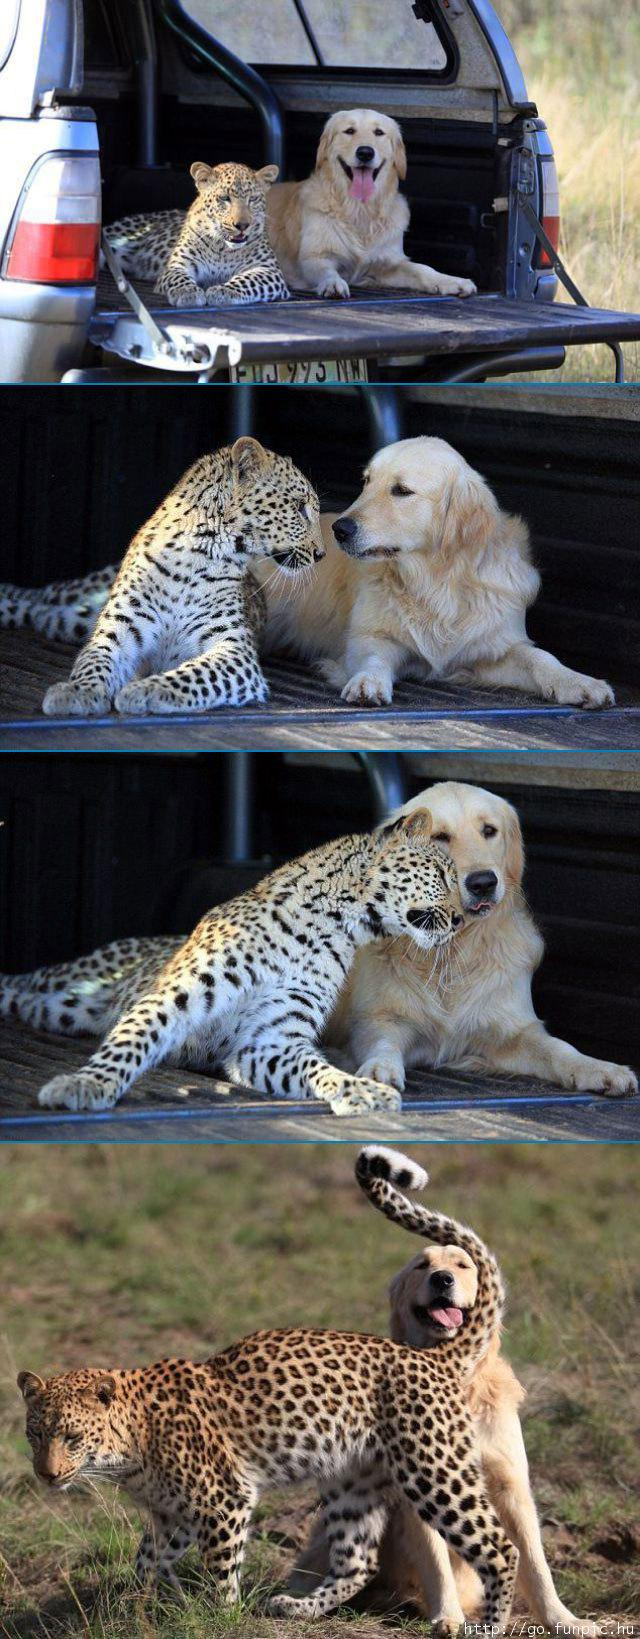 Best Friends: Cheetah and Labrador